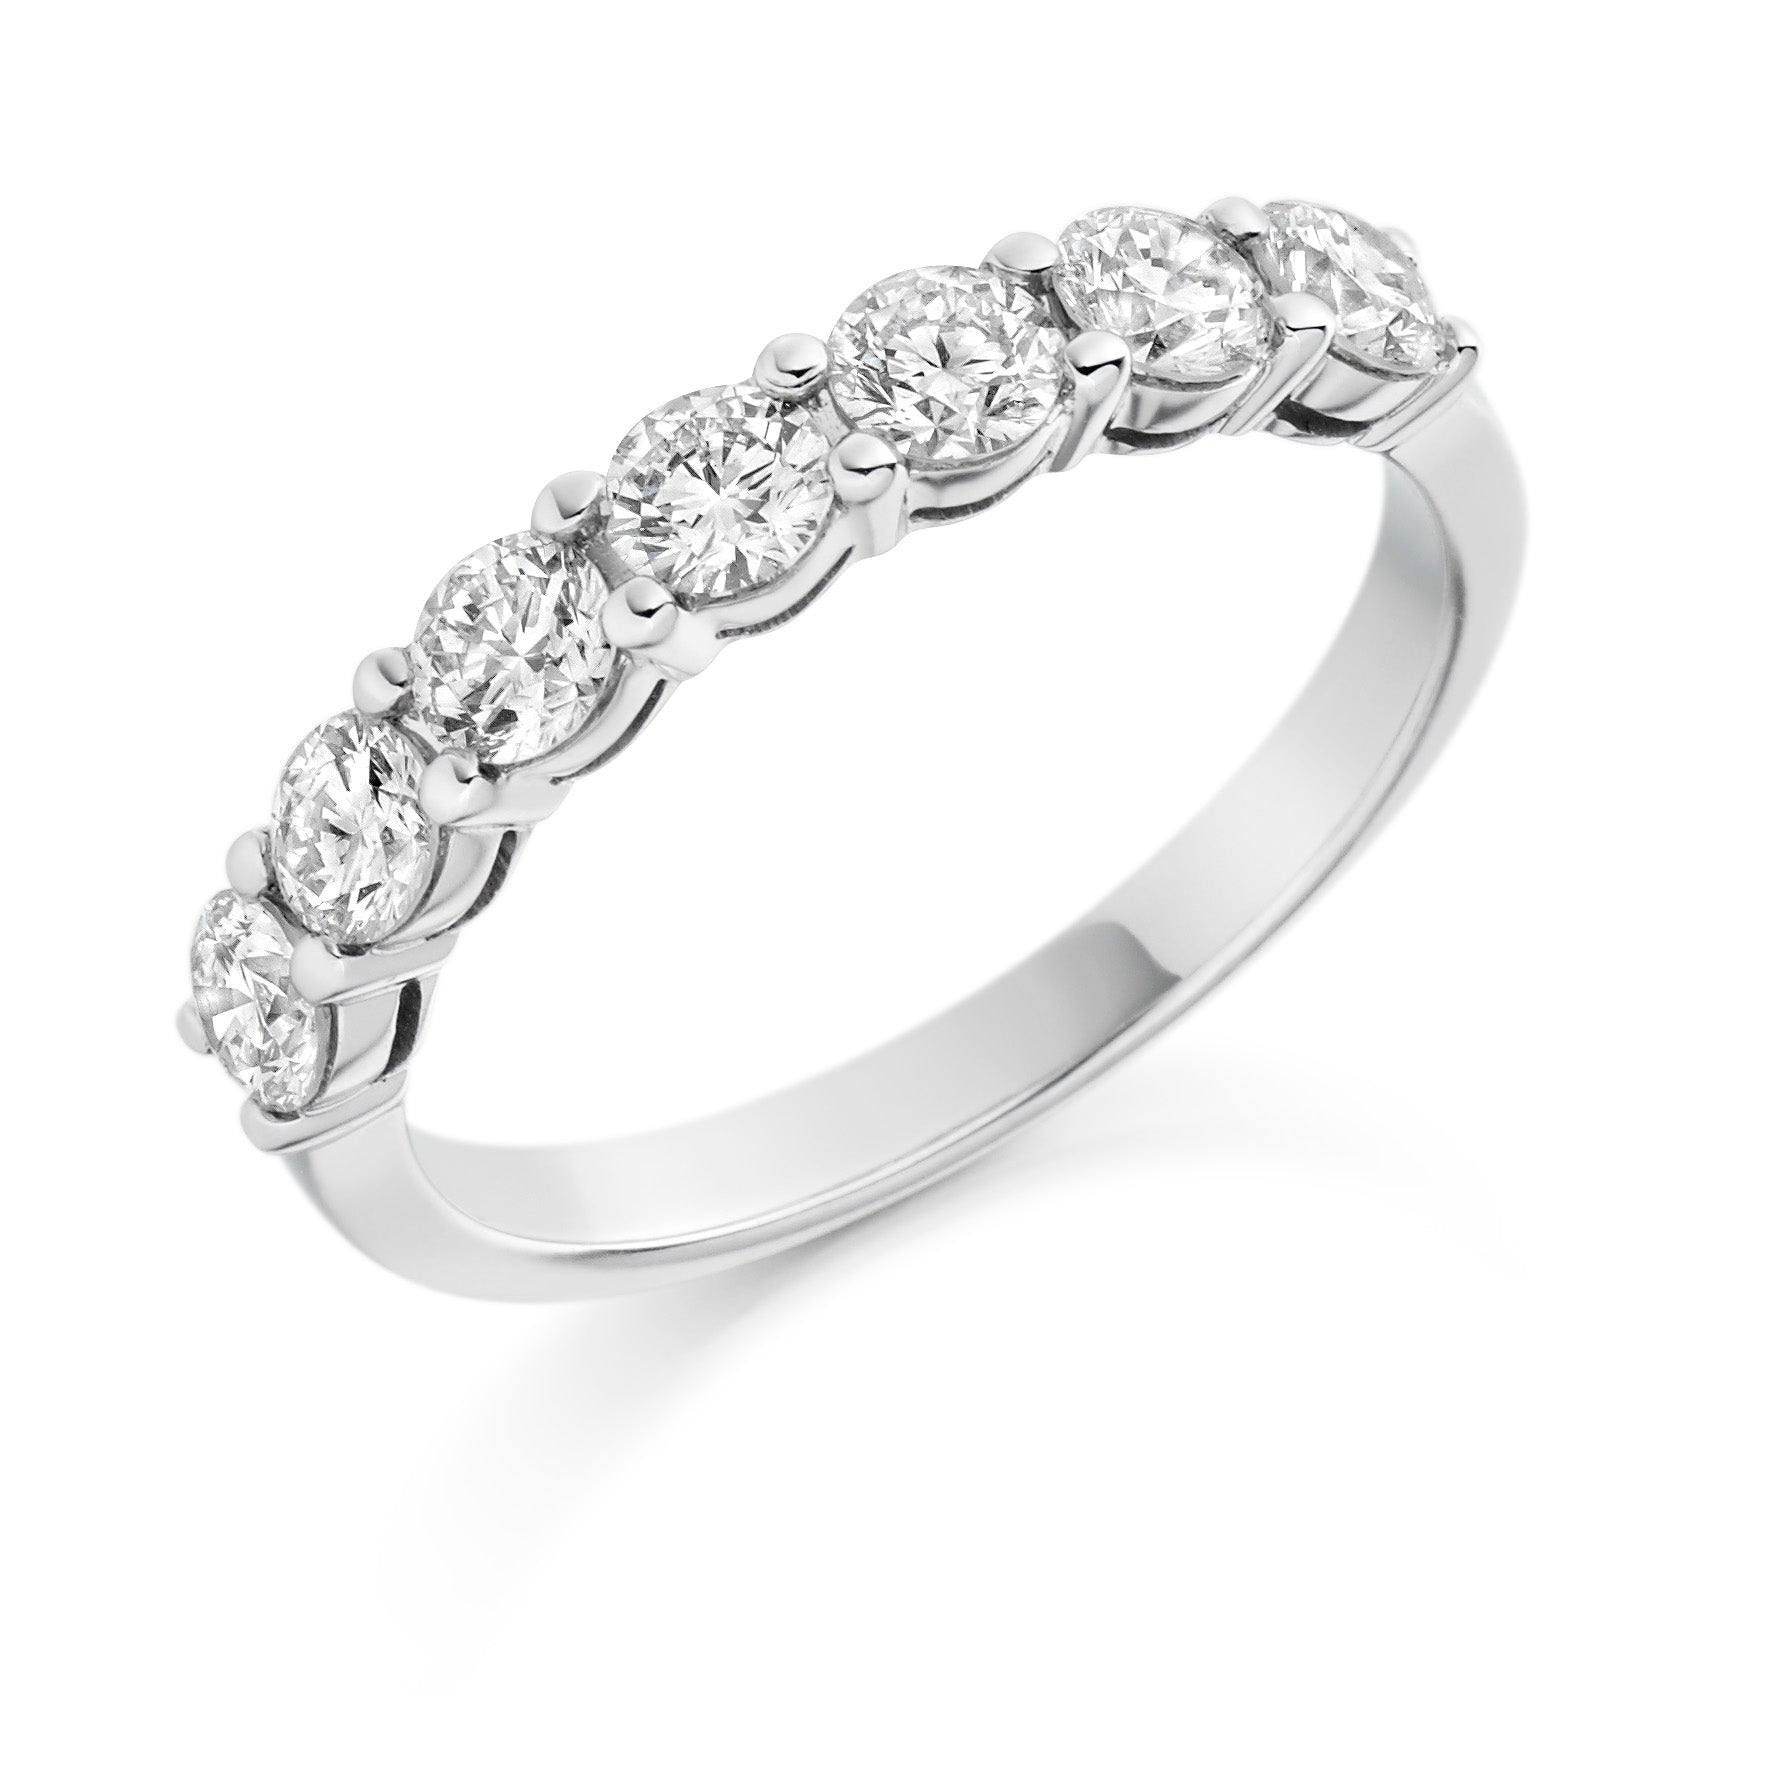 1ct Round Brilliant Cut Diamond Eternity Ring - (Home Try-On)